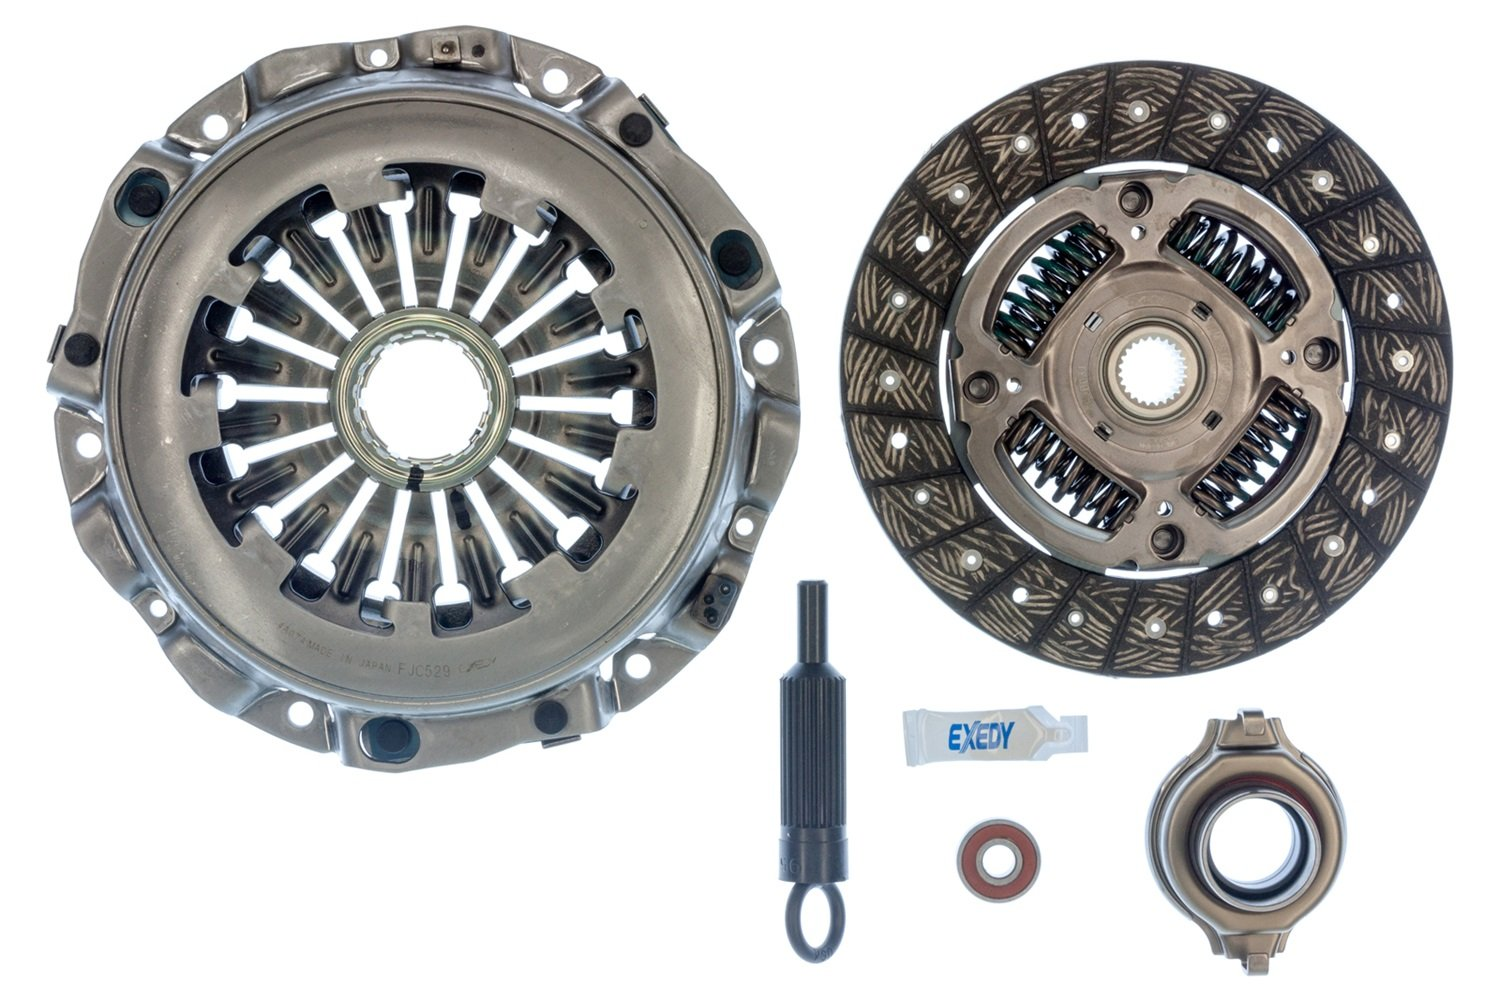 EXEDY KSB03 OEM Replacement Clutch Kit by Exedy